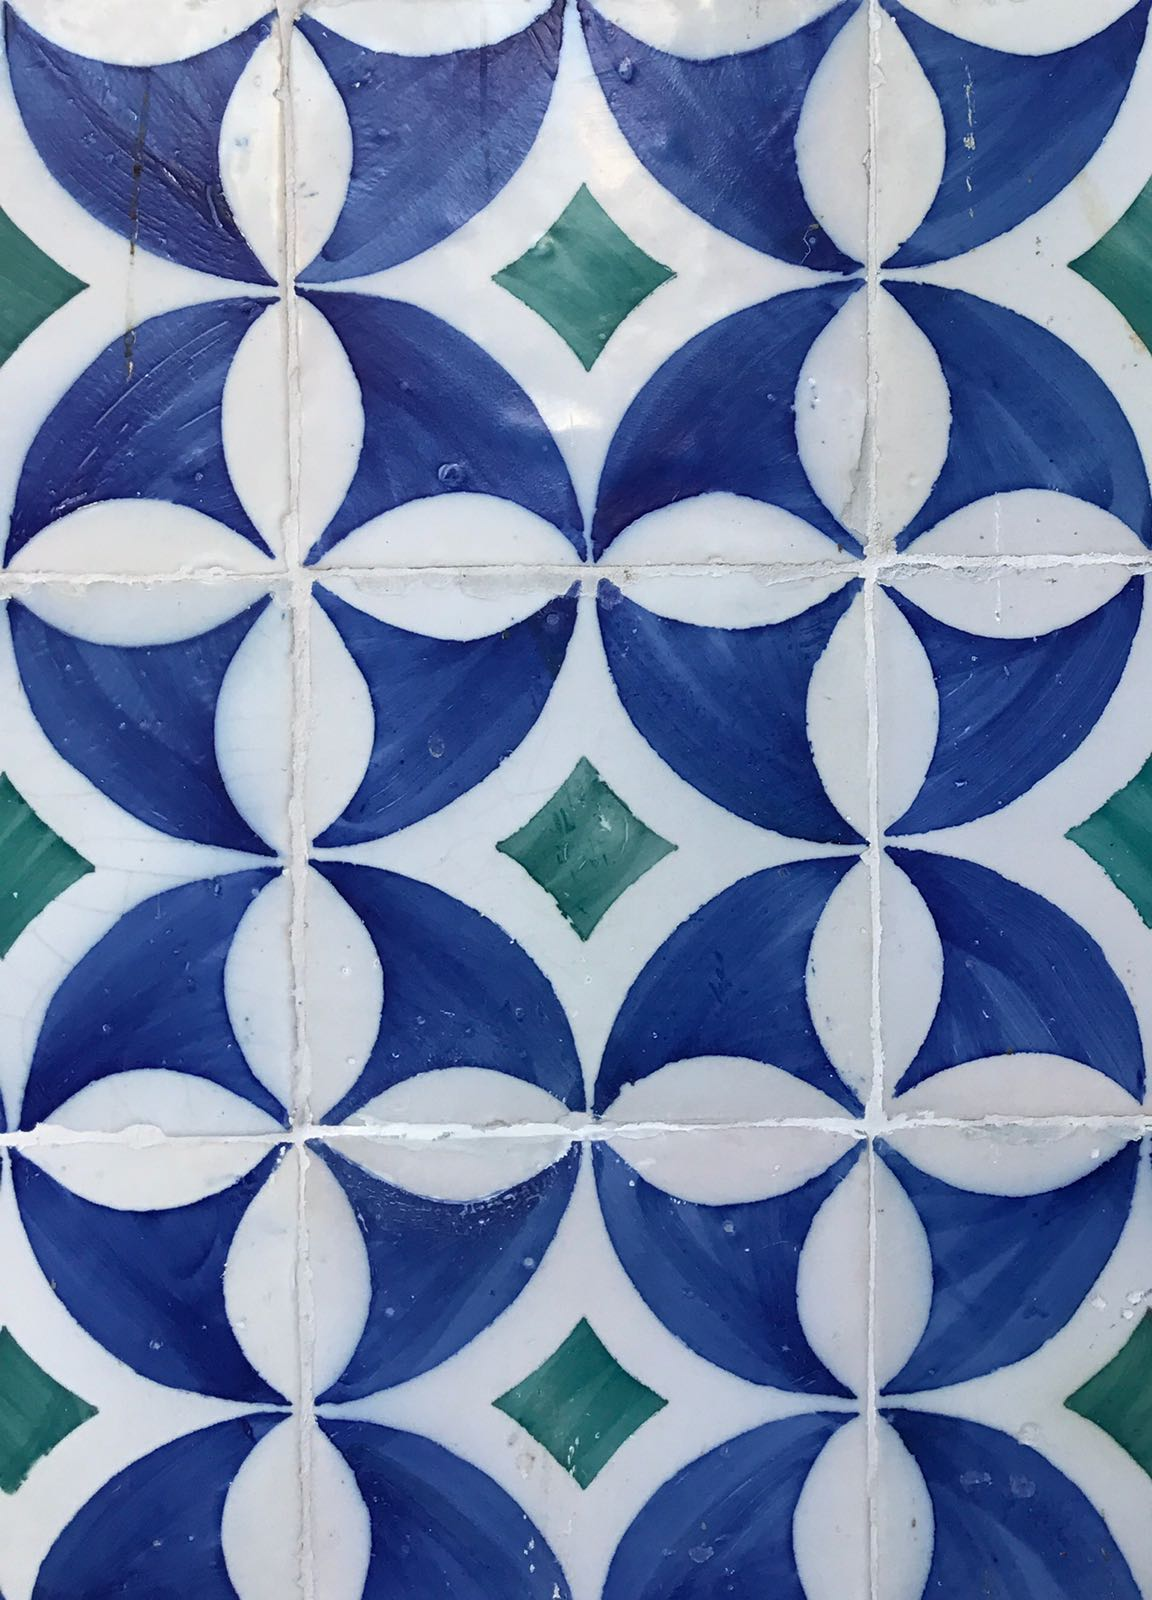 Wall of tiles which together form circles of white and blue on green